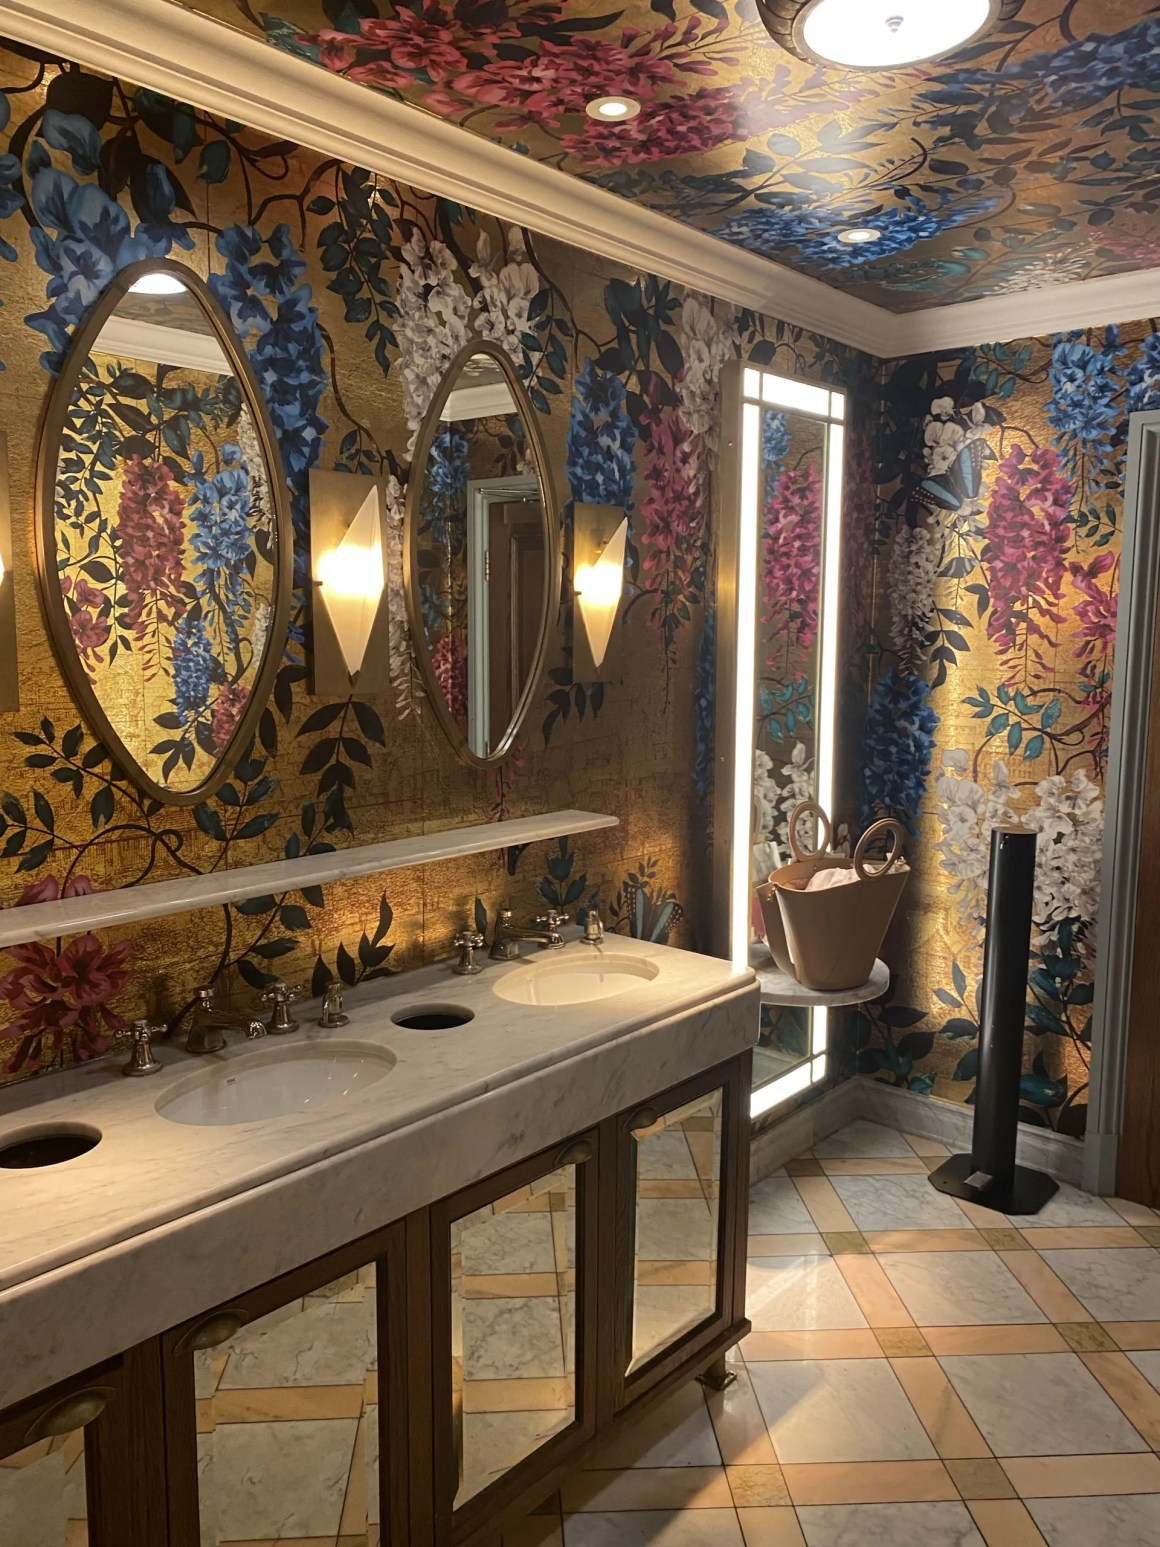 the loos at The Ivy Leeds